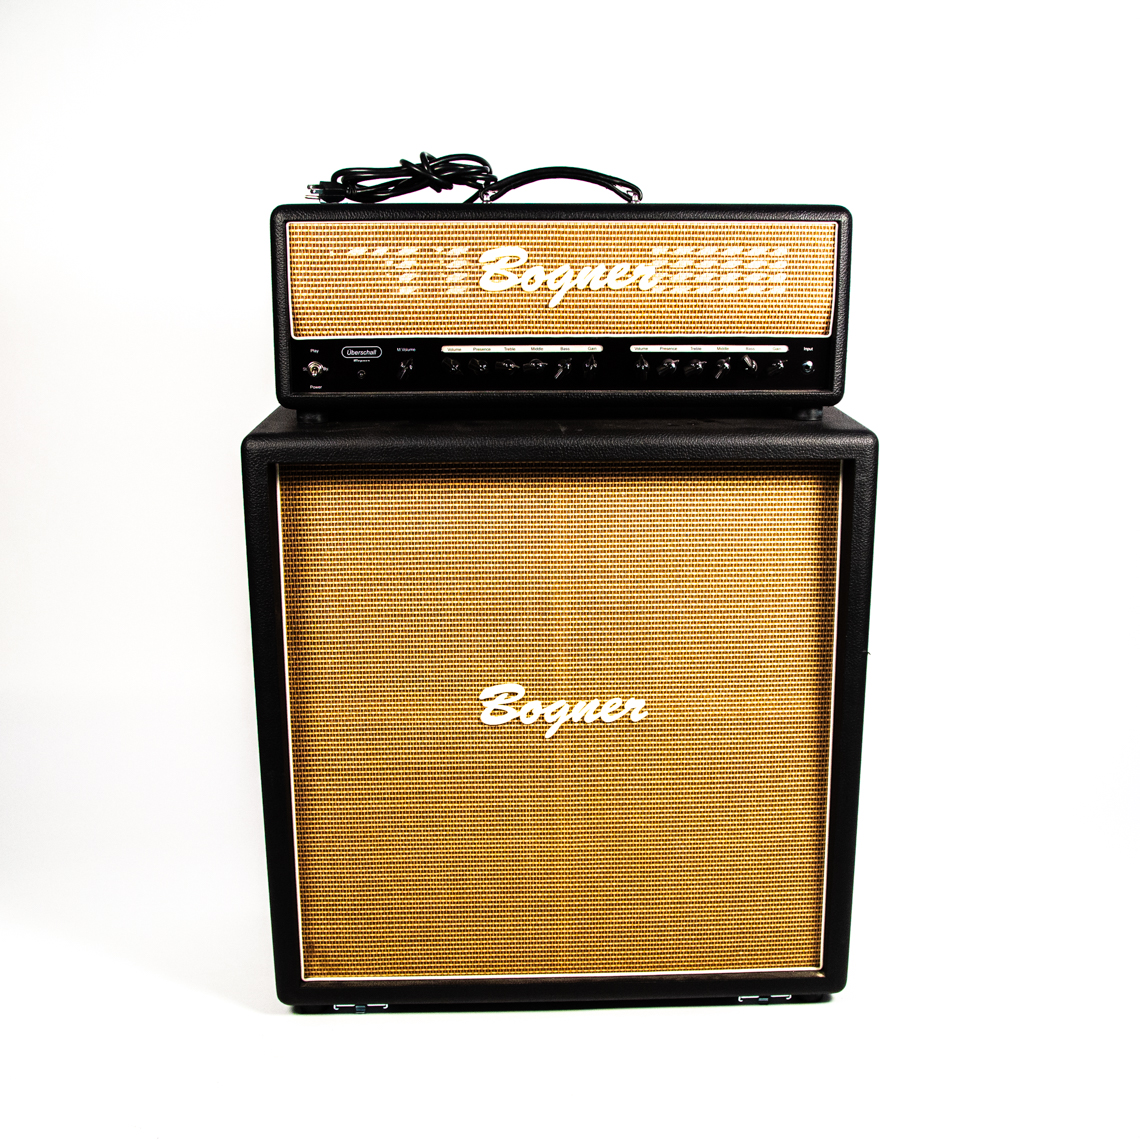 Bogner Uberschall amp head with a 4x12 cabinet